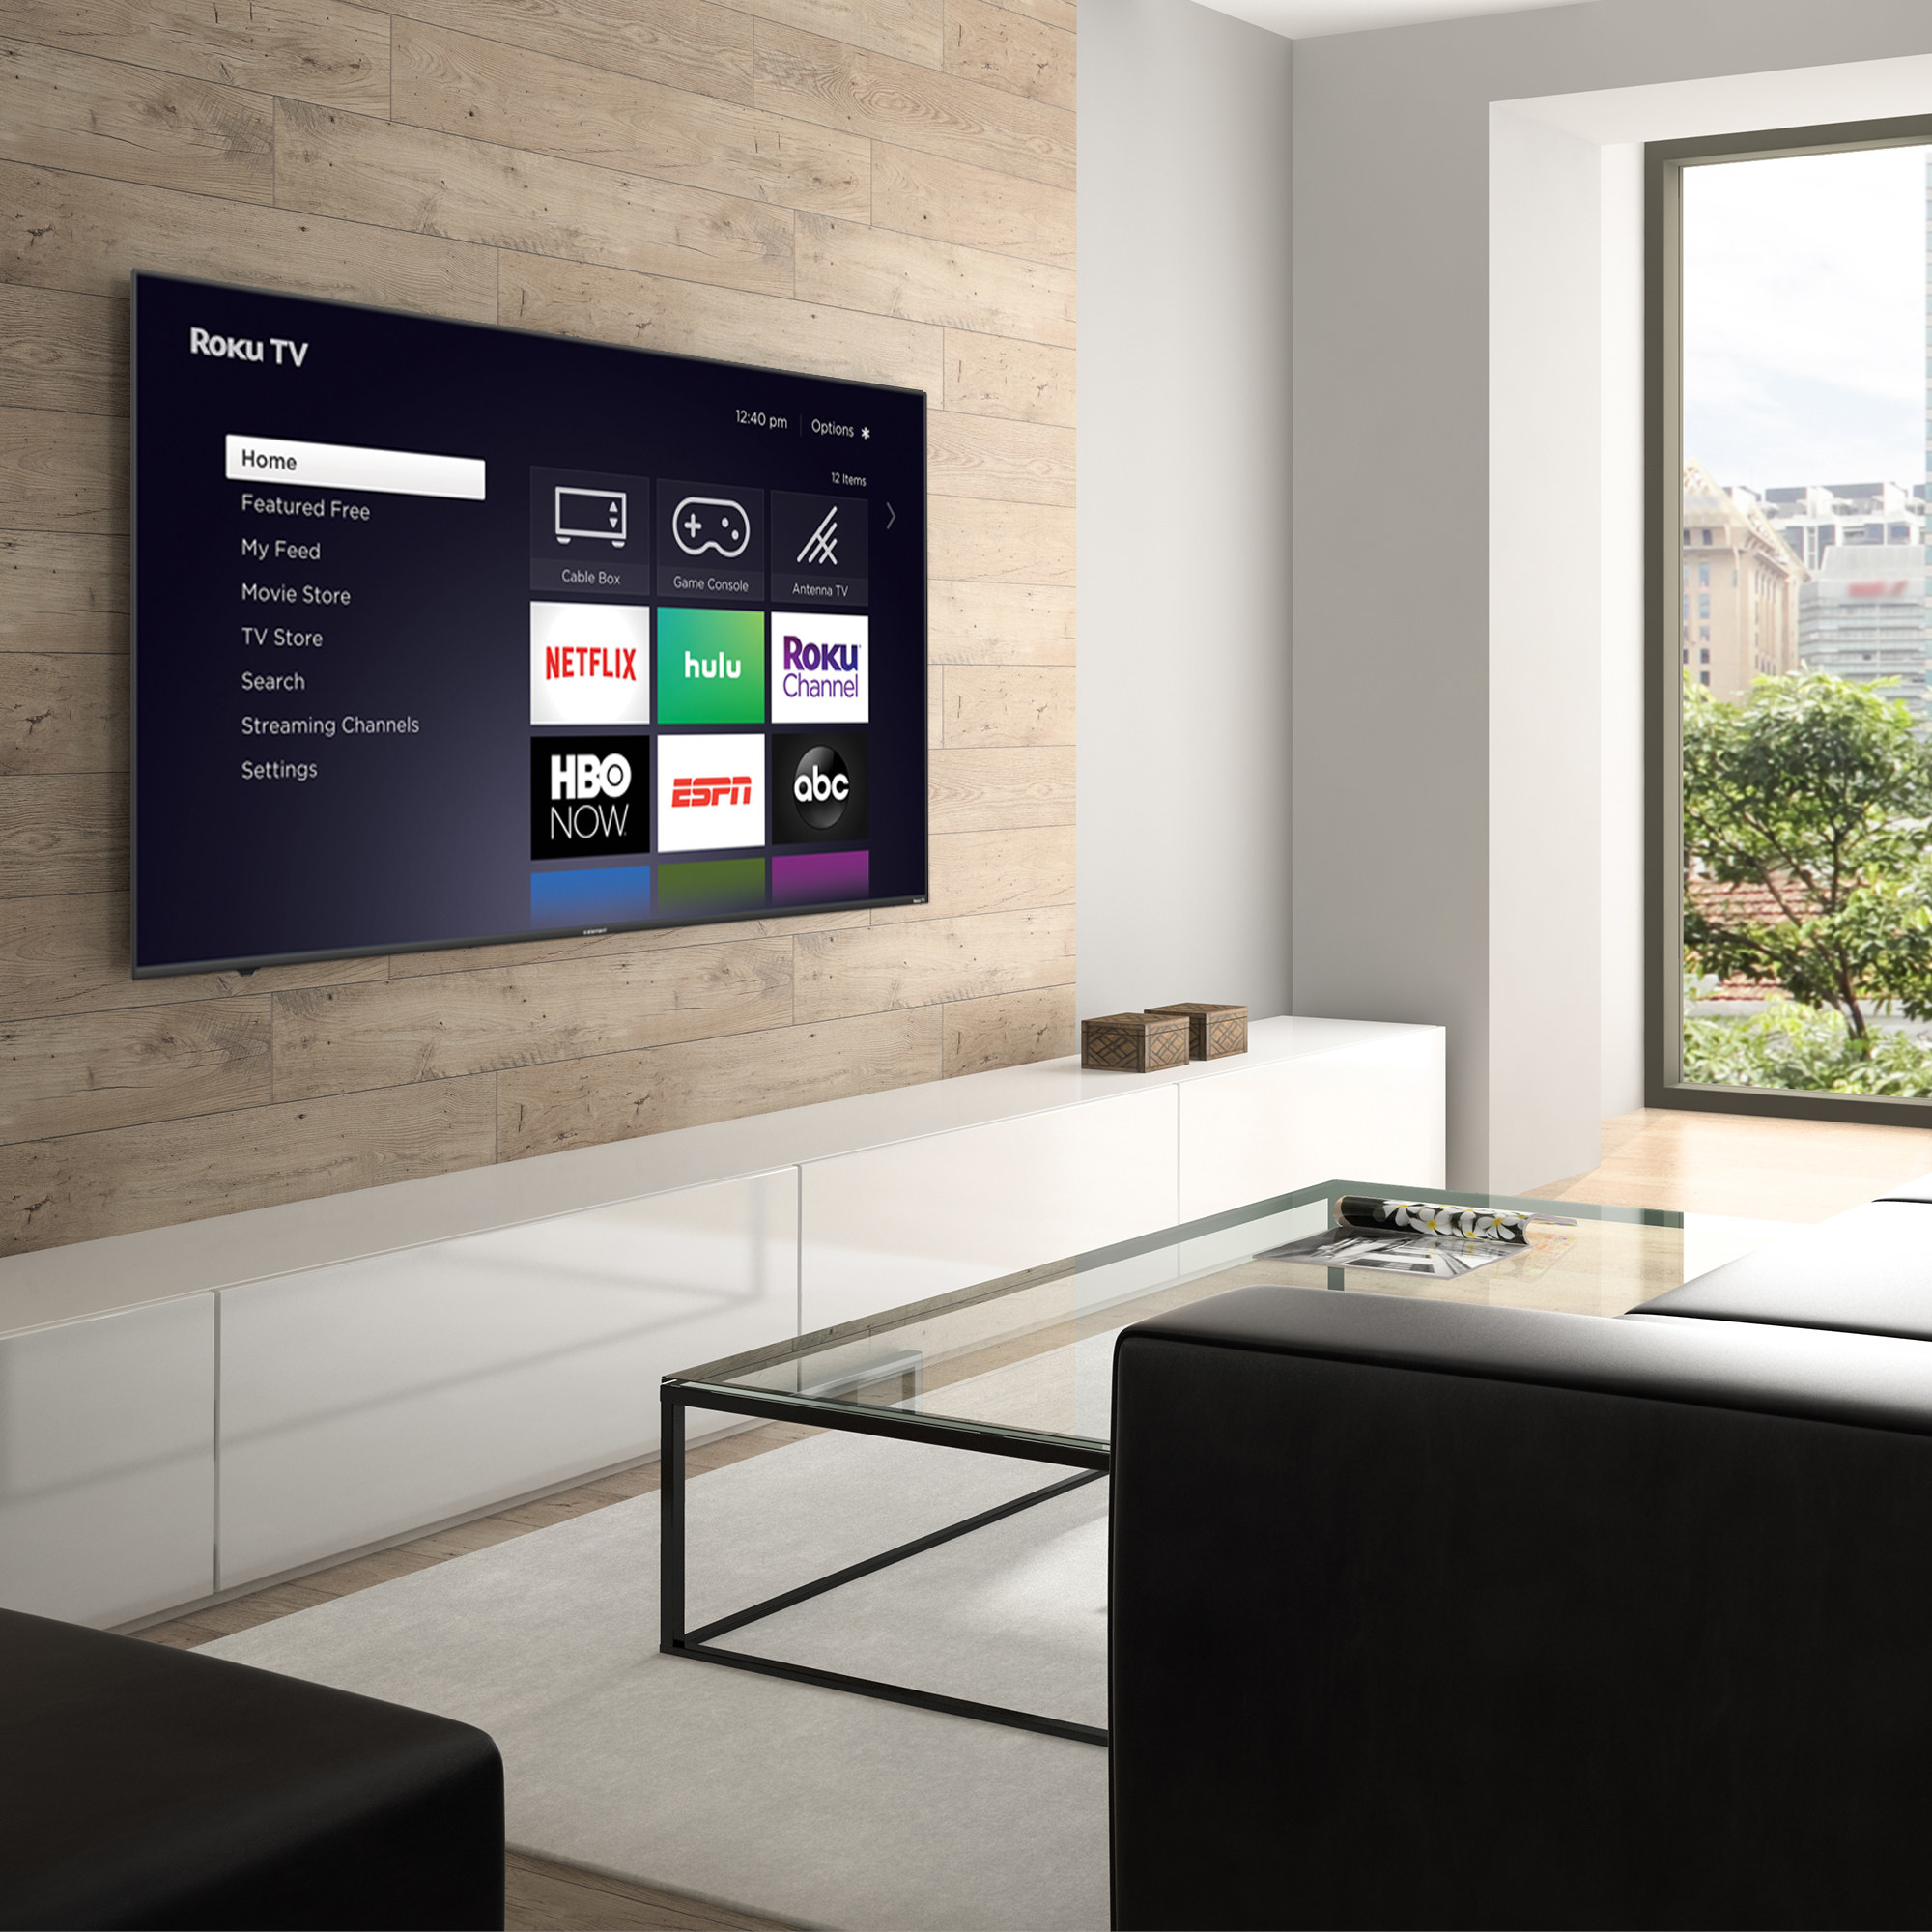 flat screen TV mounted on a wall in a living room